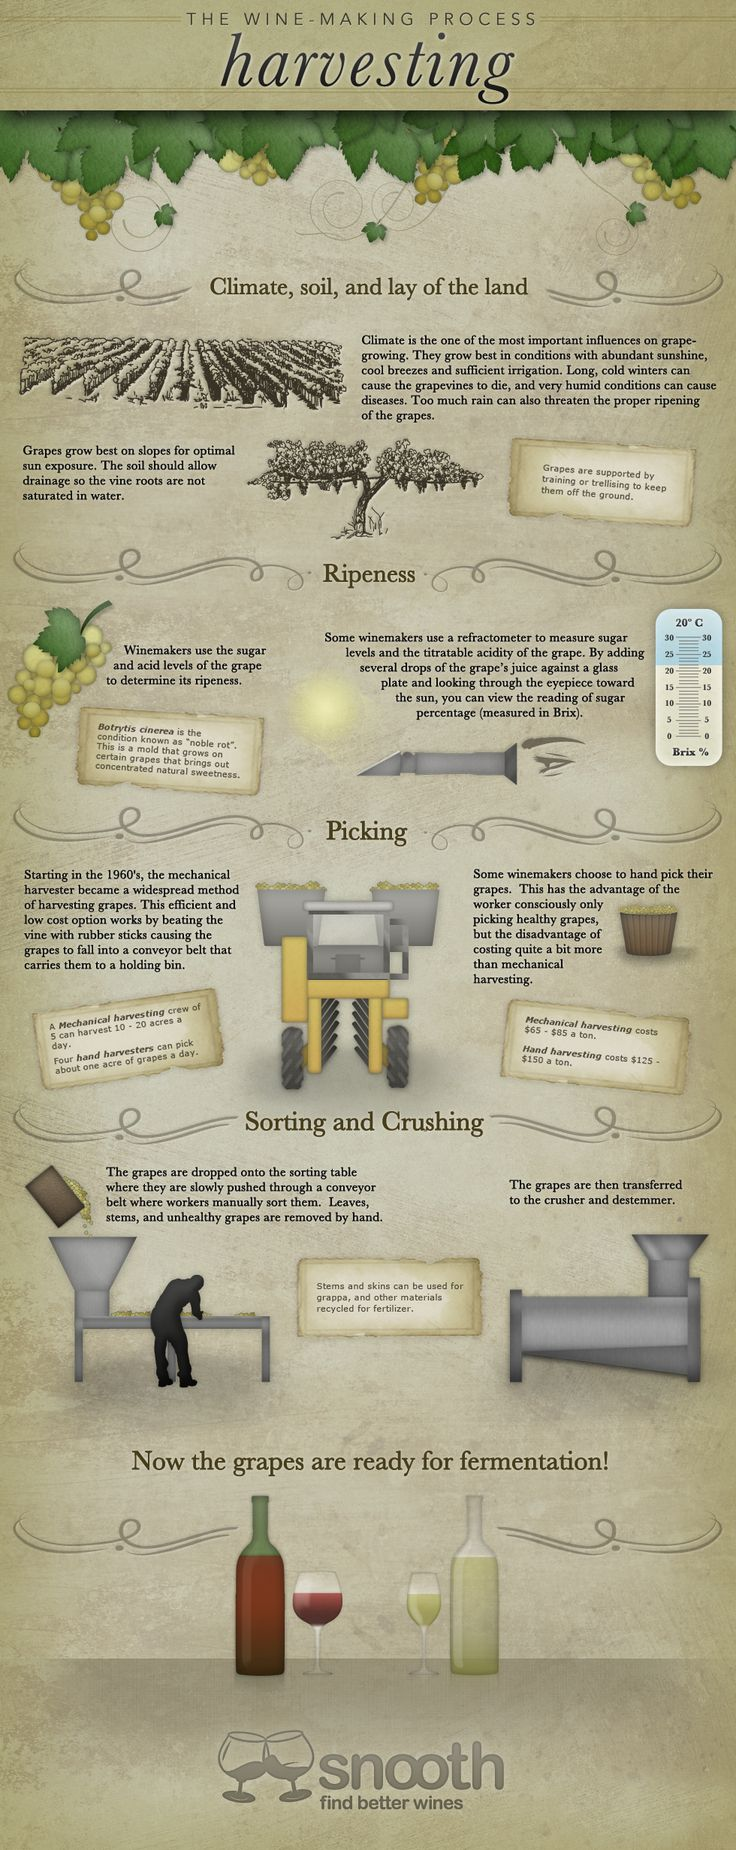 """""""The Wine Making Process: Harvesting"""" Nov-2011 by Snooth.com - Infographic"""